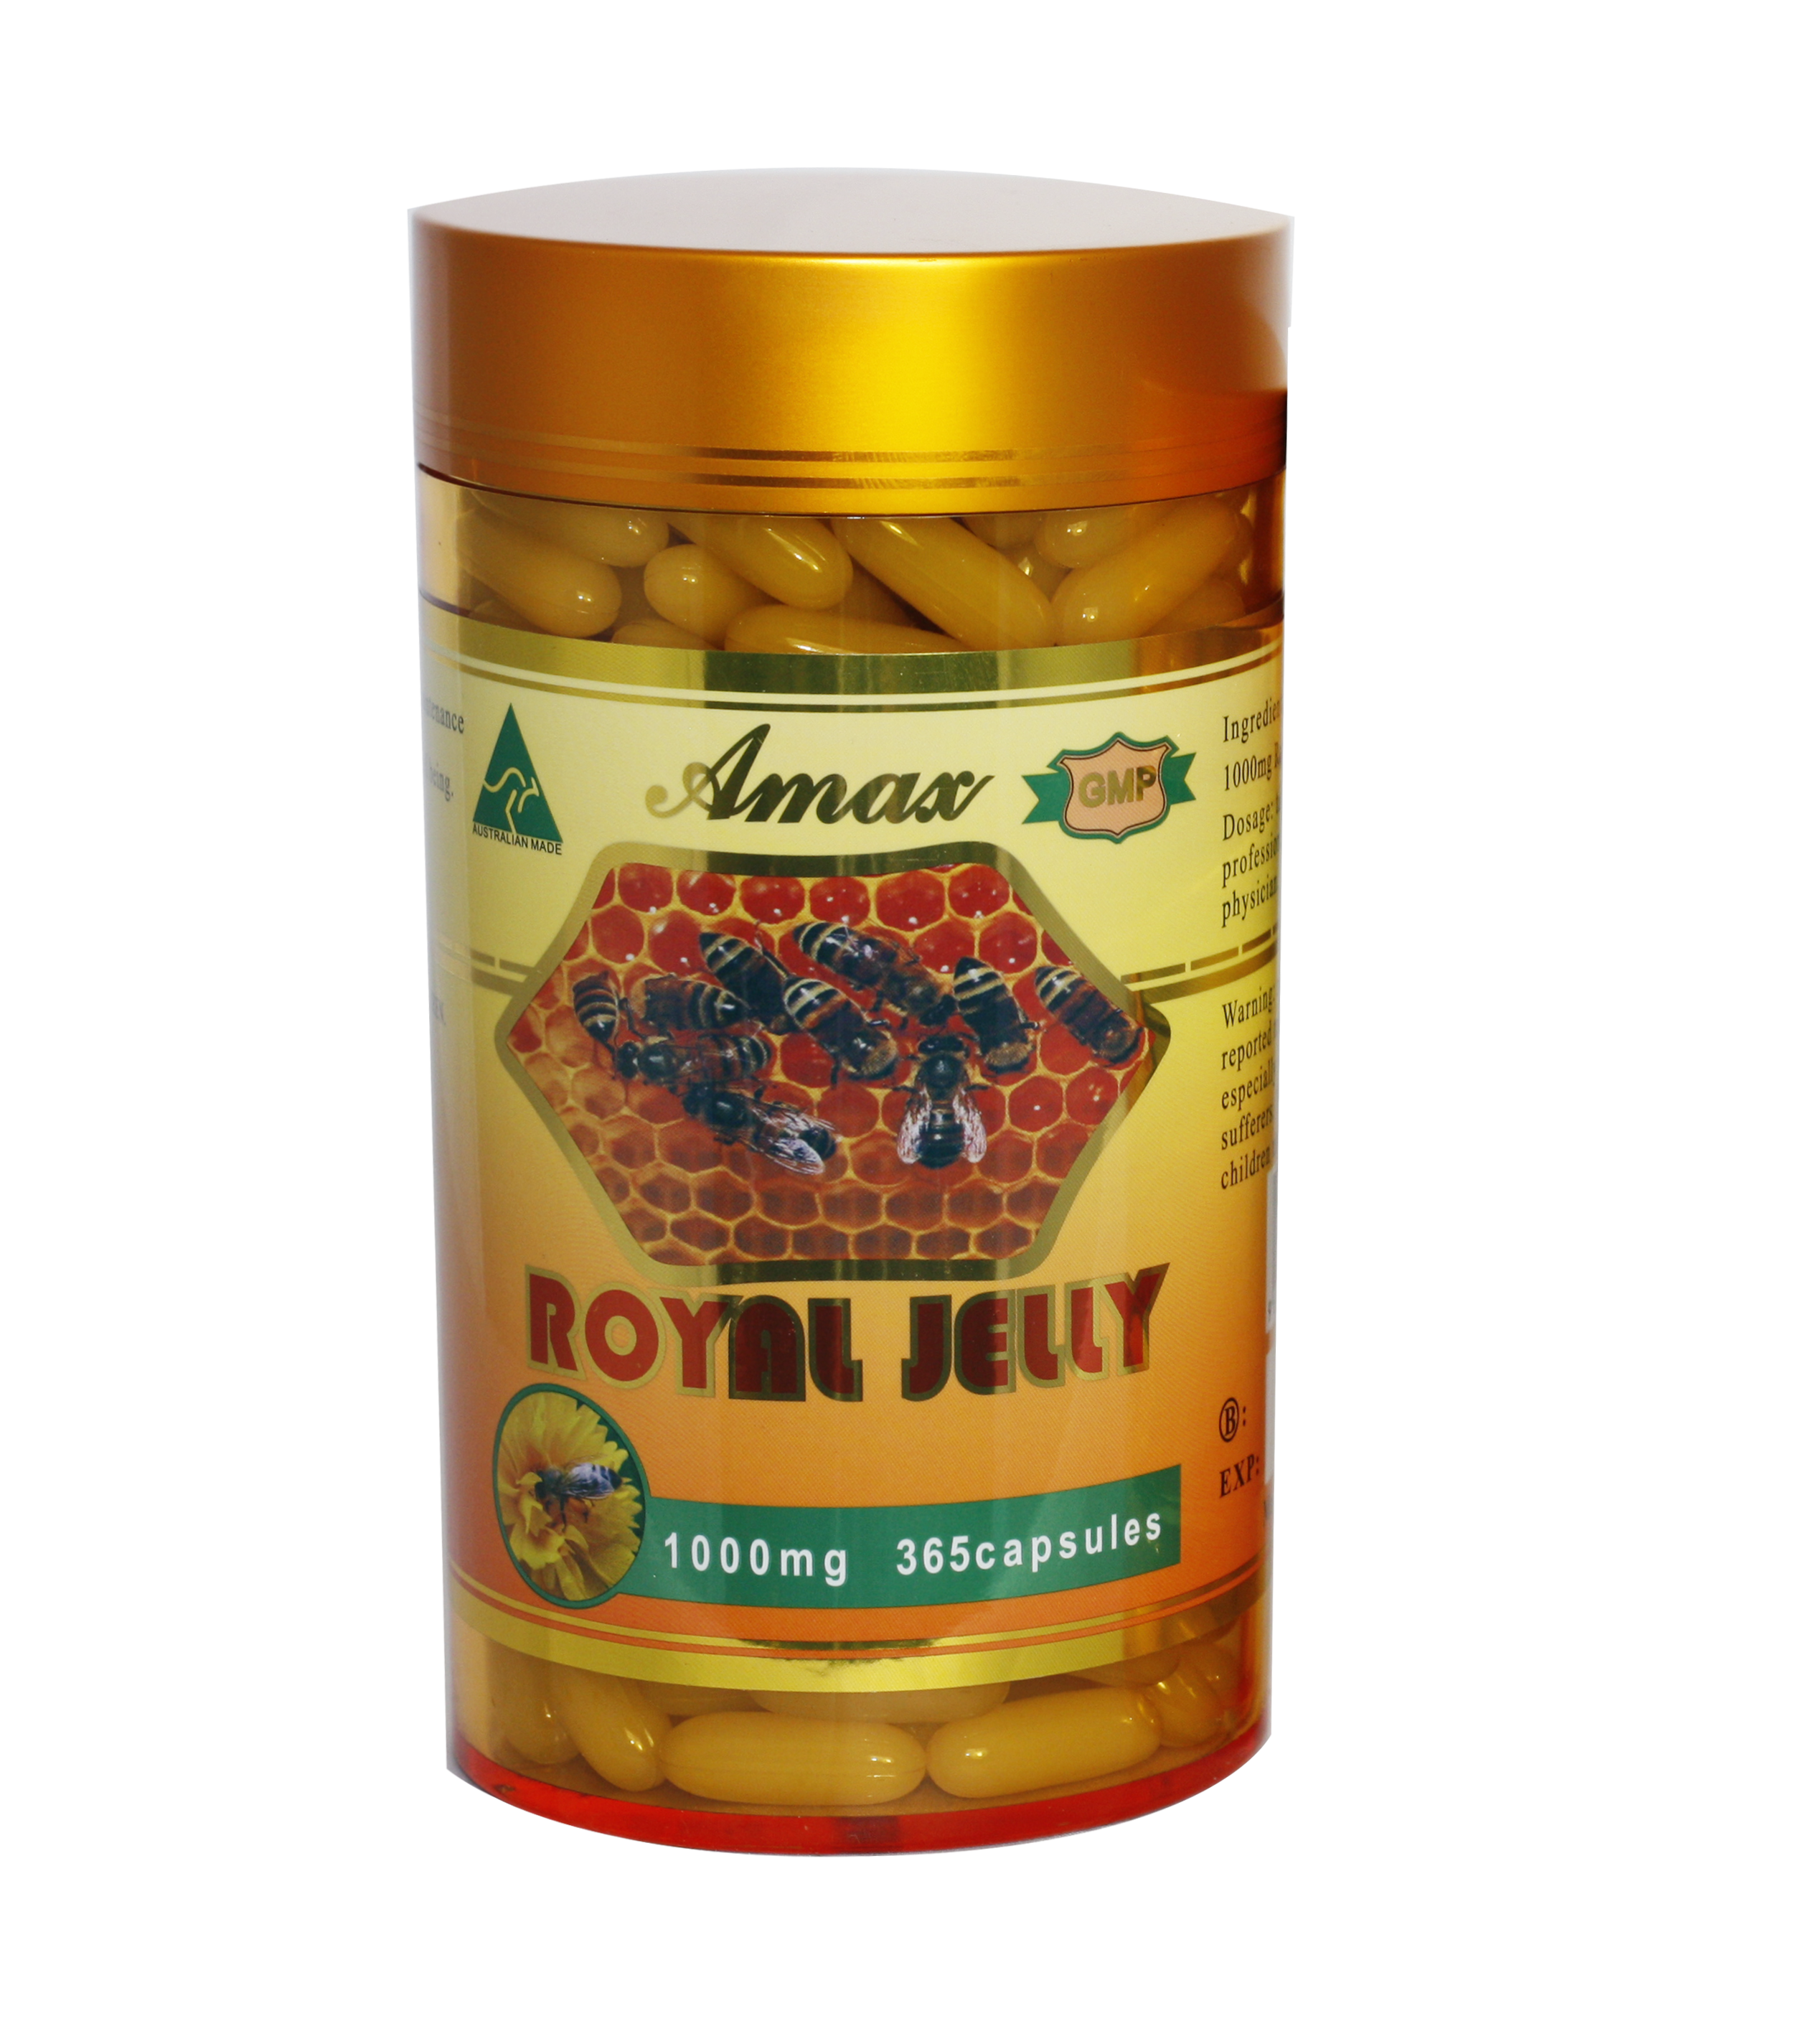 Amax royal jelly 365s